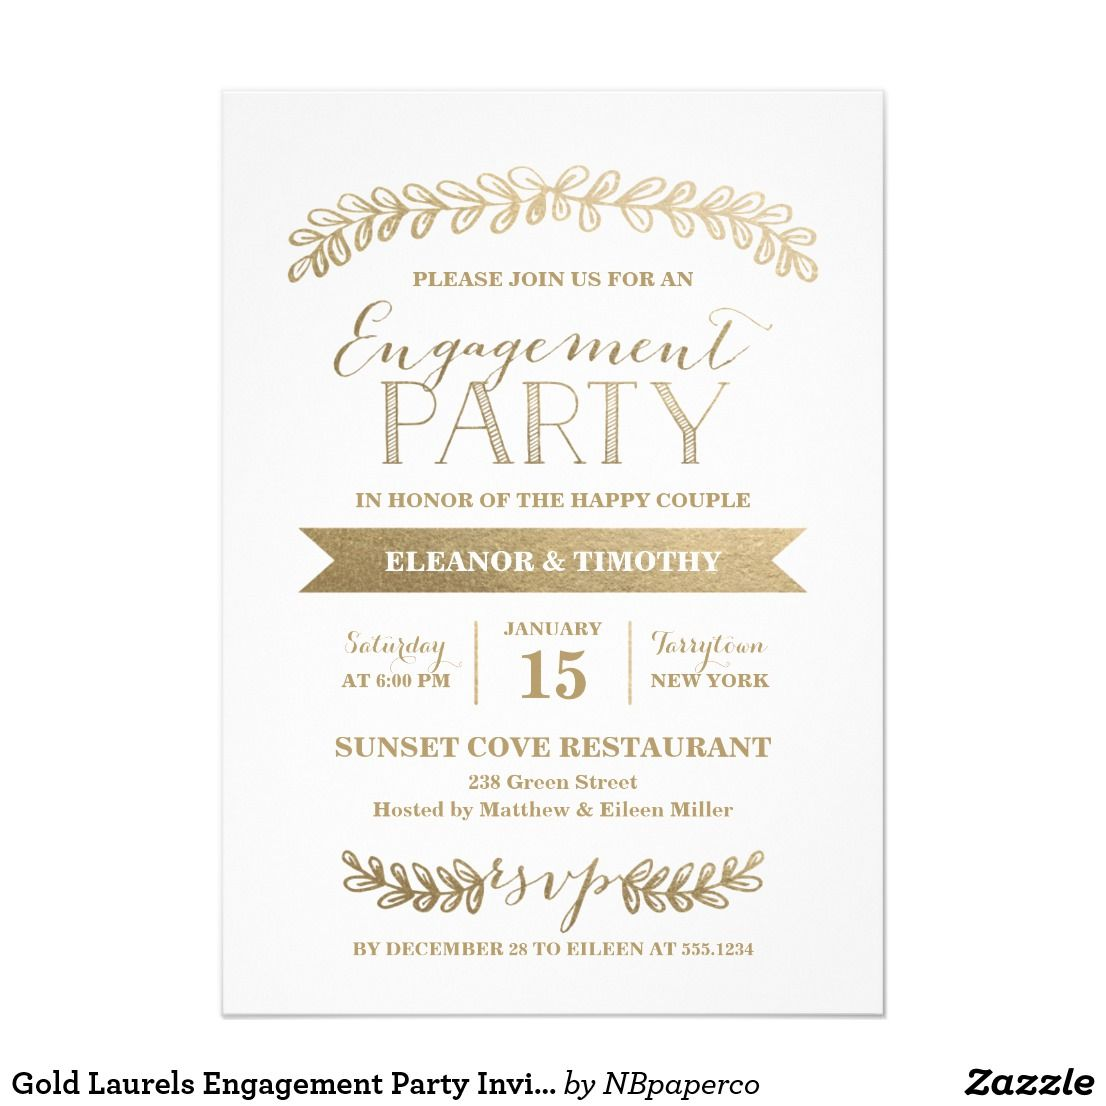 Gold Laurels Engagement Party Invitation This elegant and chic ...